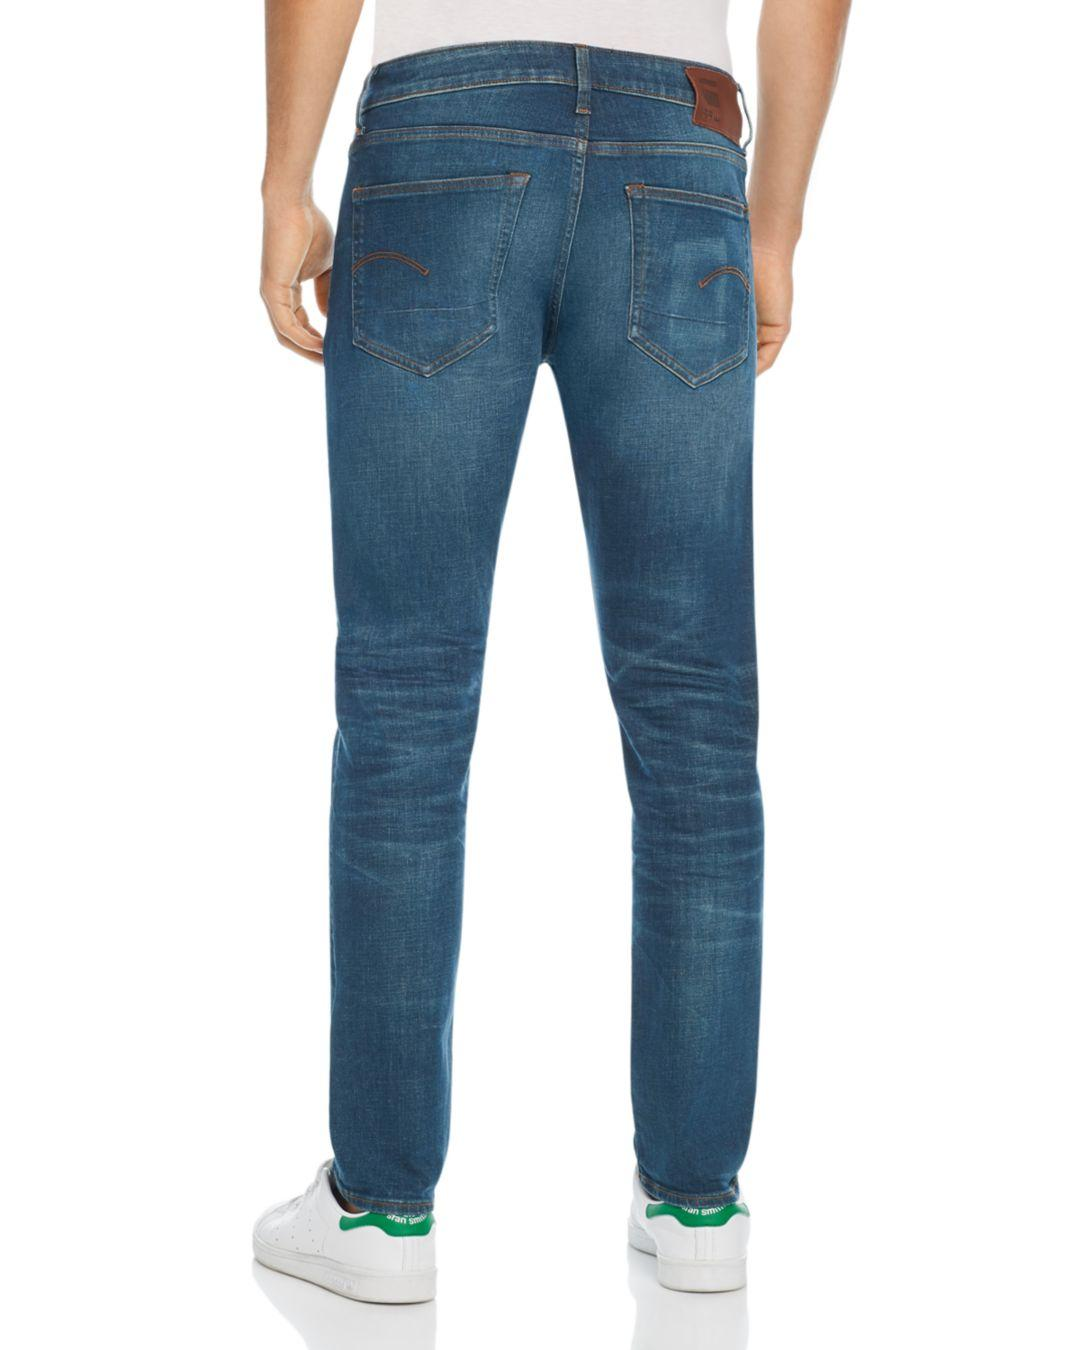 70c8aac2043 G-Star RAW G - Star Raw 3301 Slim Fit Jeans In Medium Aged in Blue for Men  - Lyst